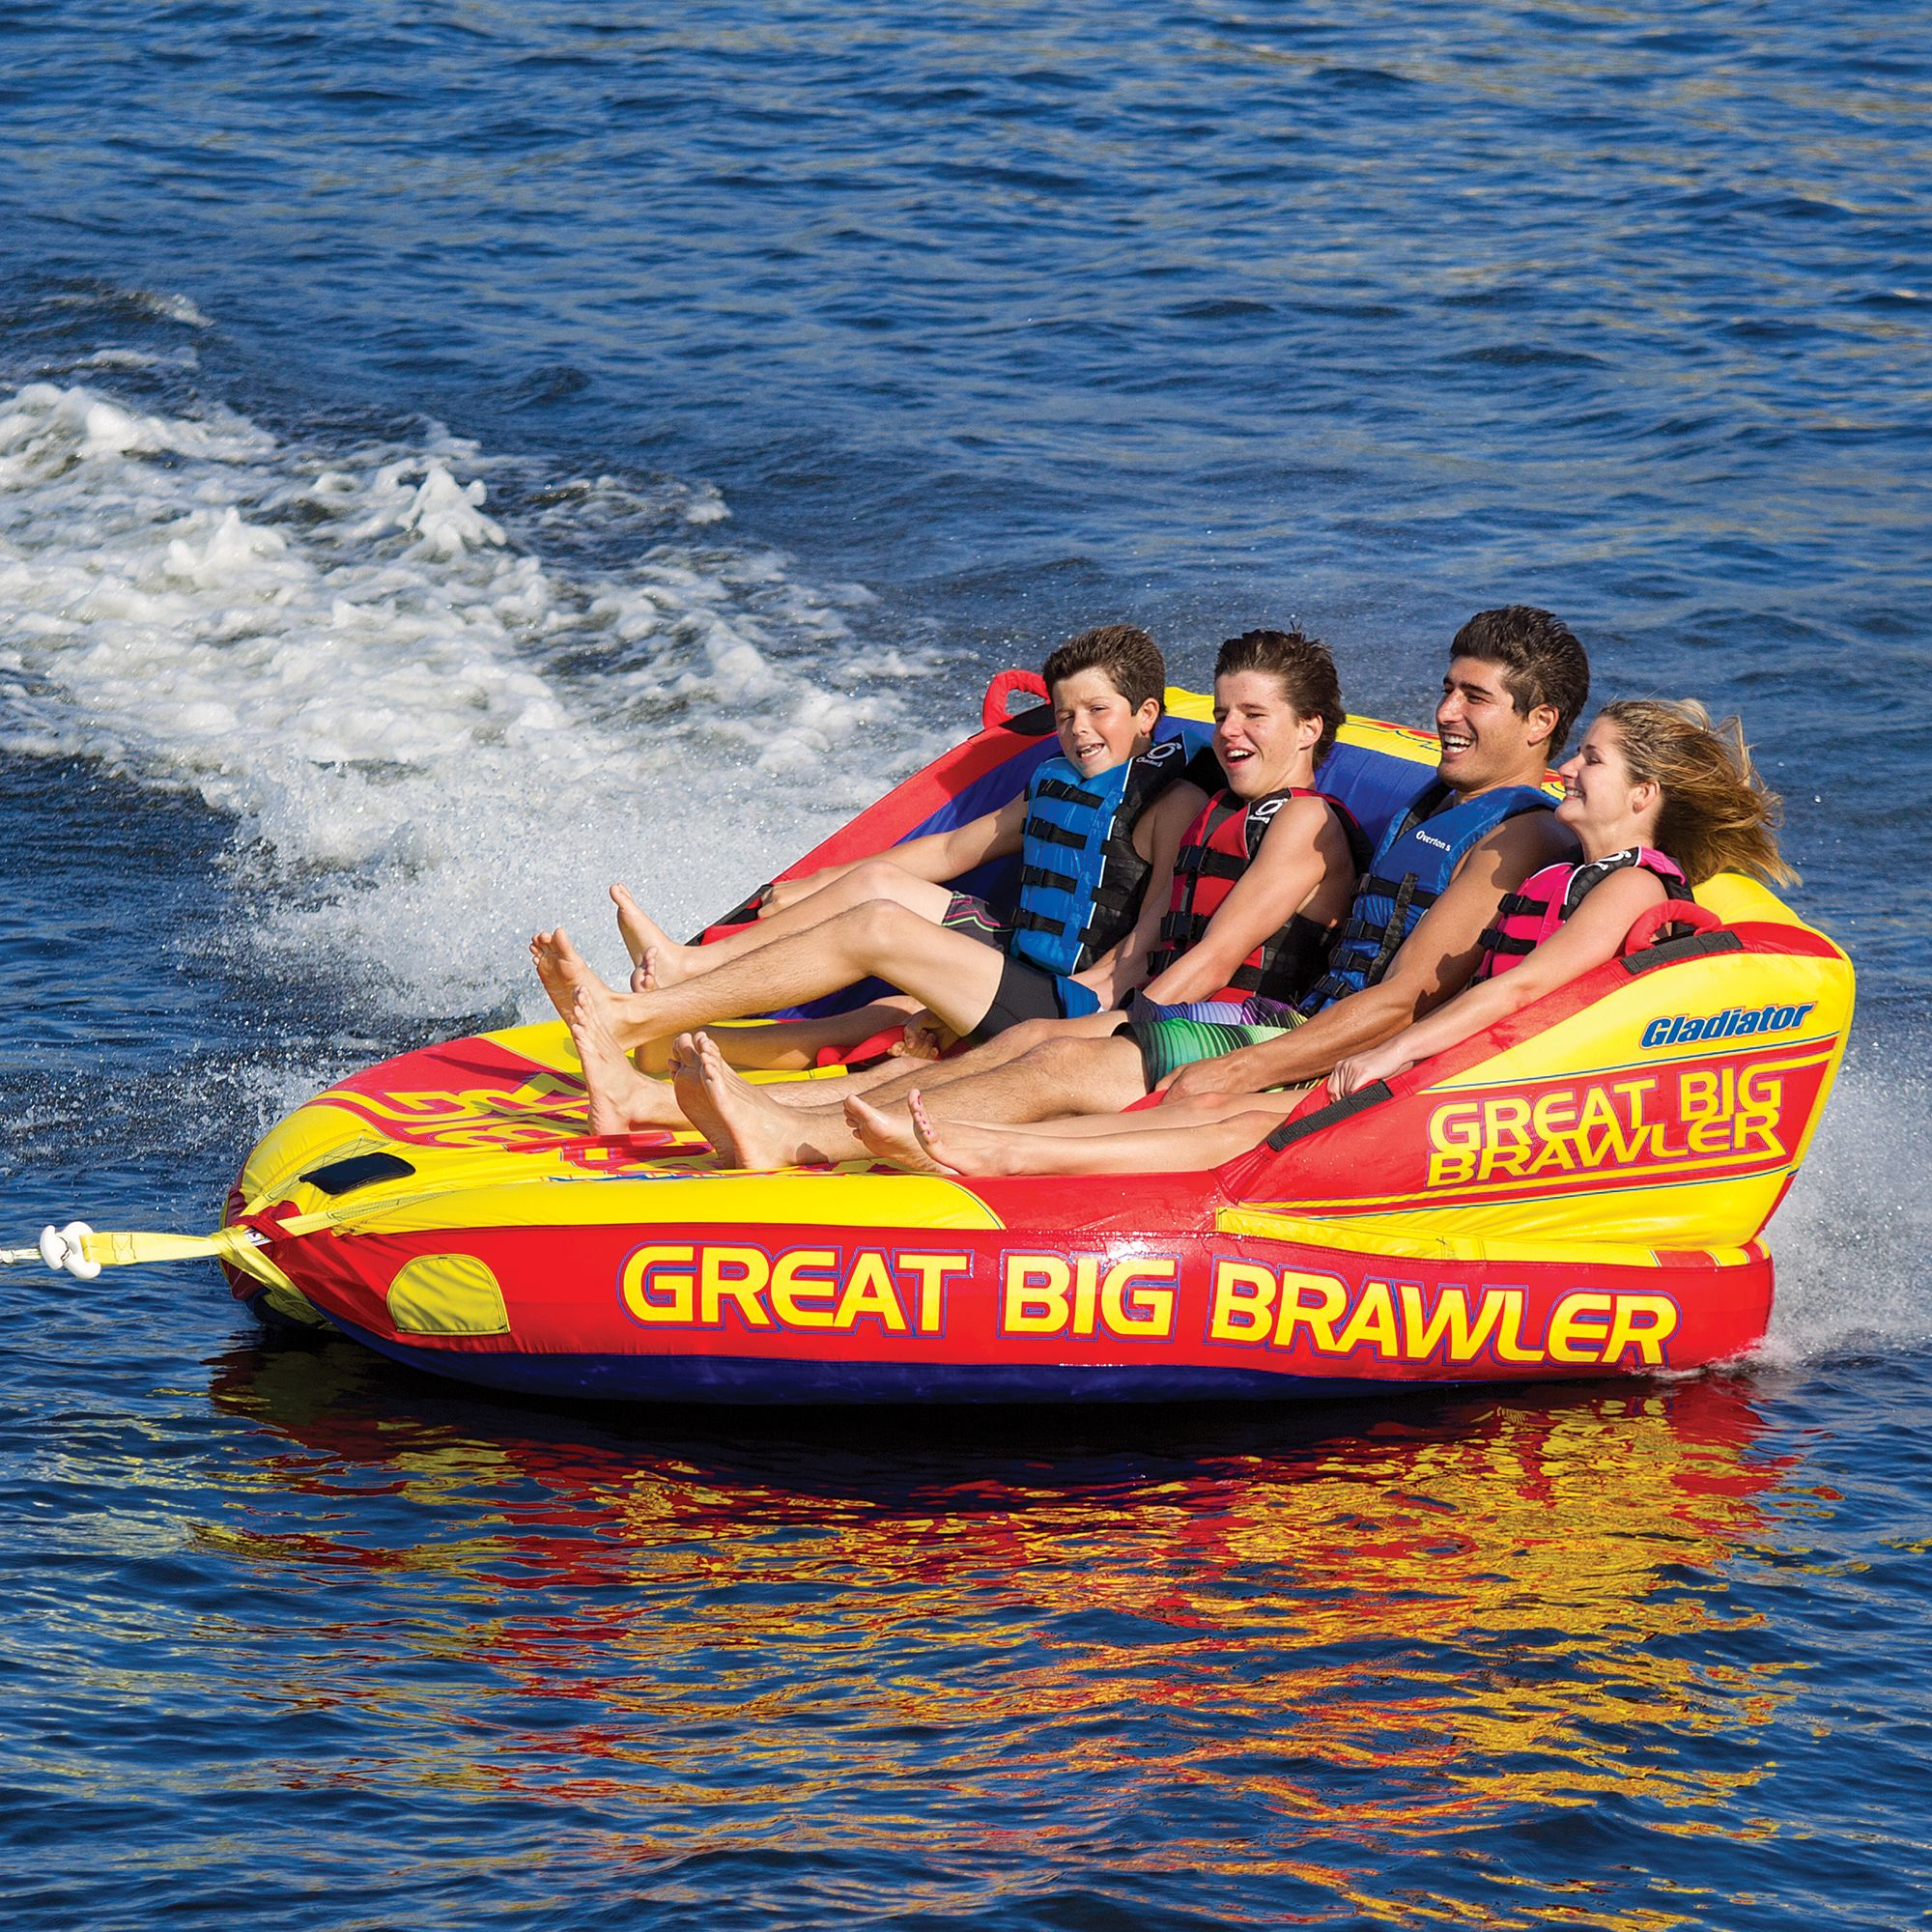 Boat Covers Wakeboards Boat Seats Tubes Pwc Marine Accessories Towable Tubes Boat Covers Boat